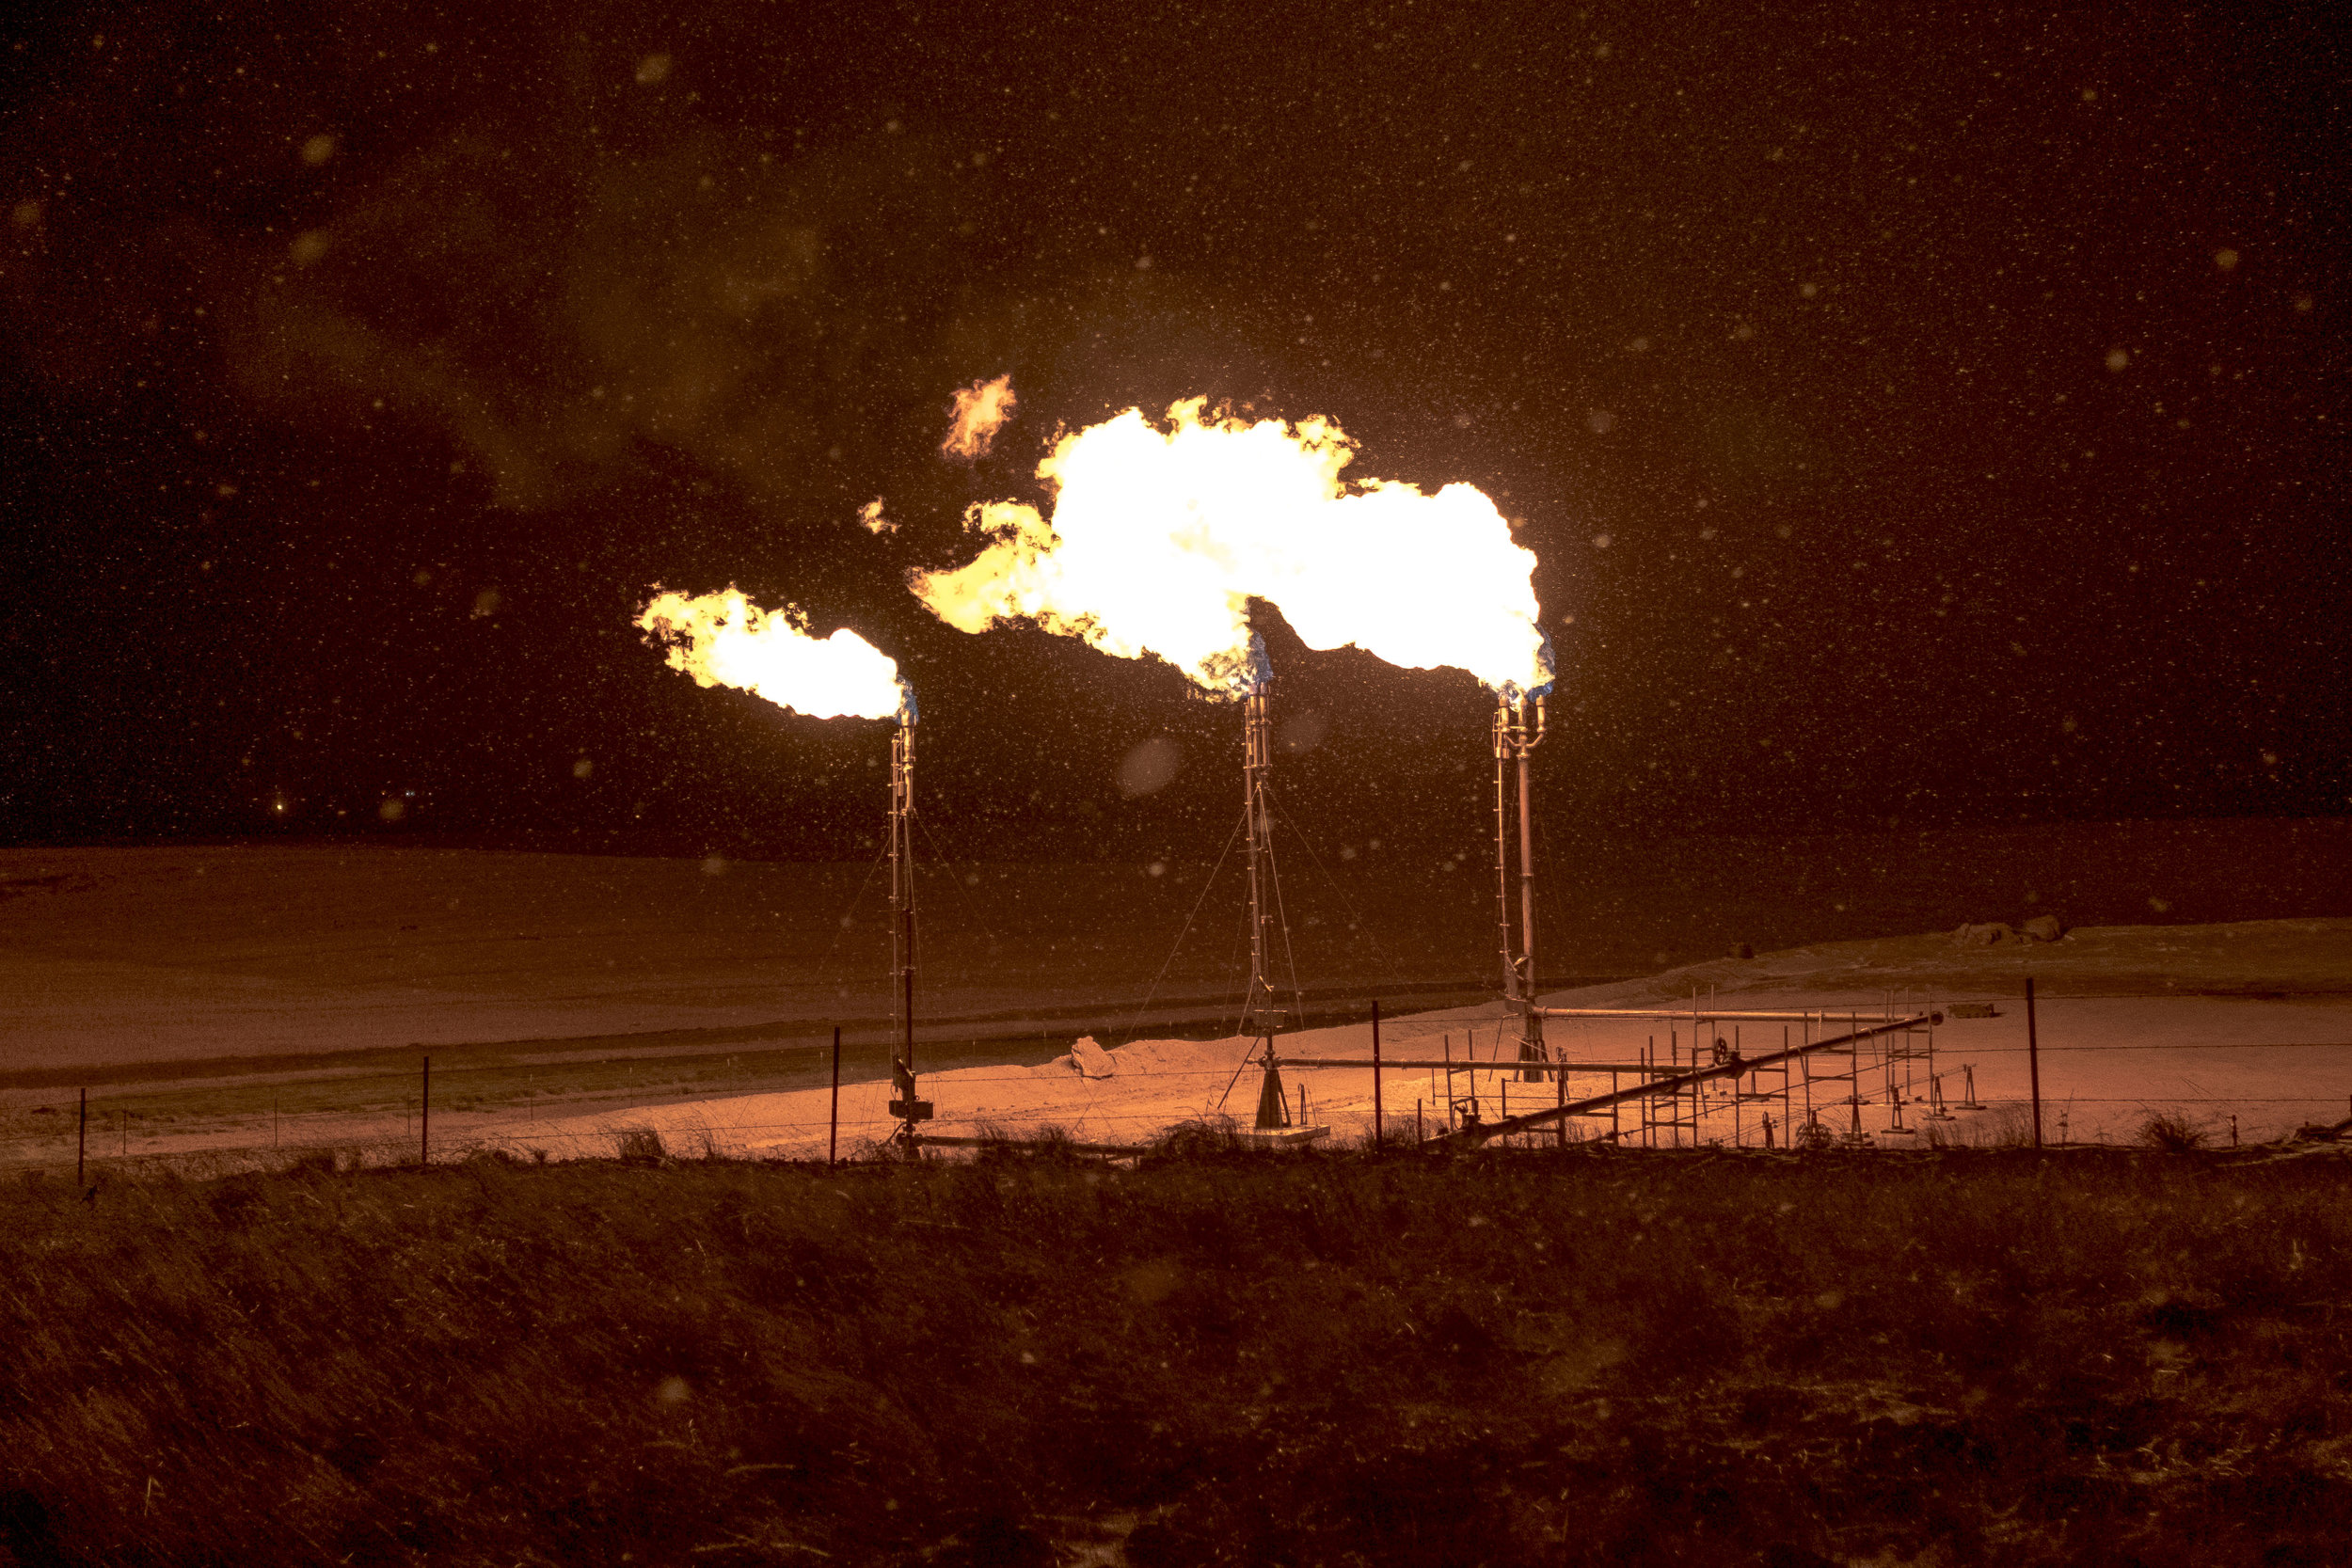 Gas flares on the Fort Berthold Reservation in N.D. on Nov. 16, 2018. ***HOLD FOR LIPTON SERIES, TALK TO MARISA SCHWARTZ TAYLOR***  30227560A                               NYTCREDIT: Gabriella Demczuk for The New York Times